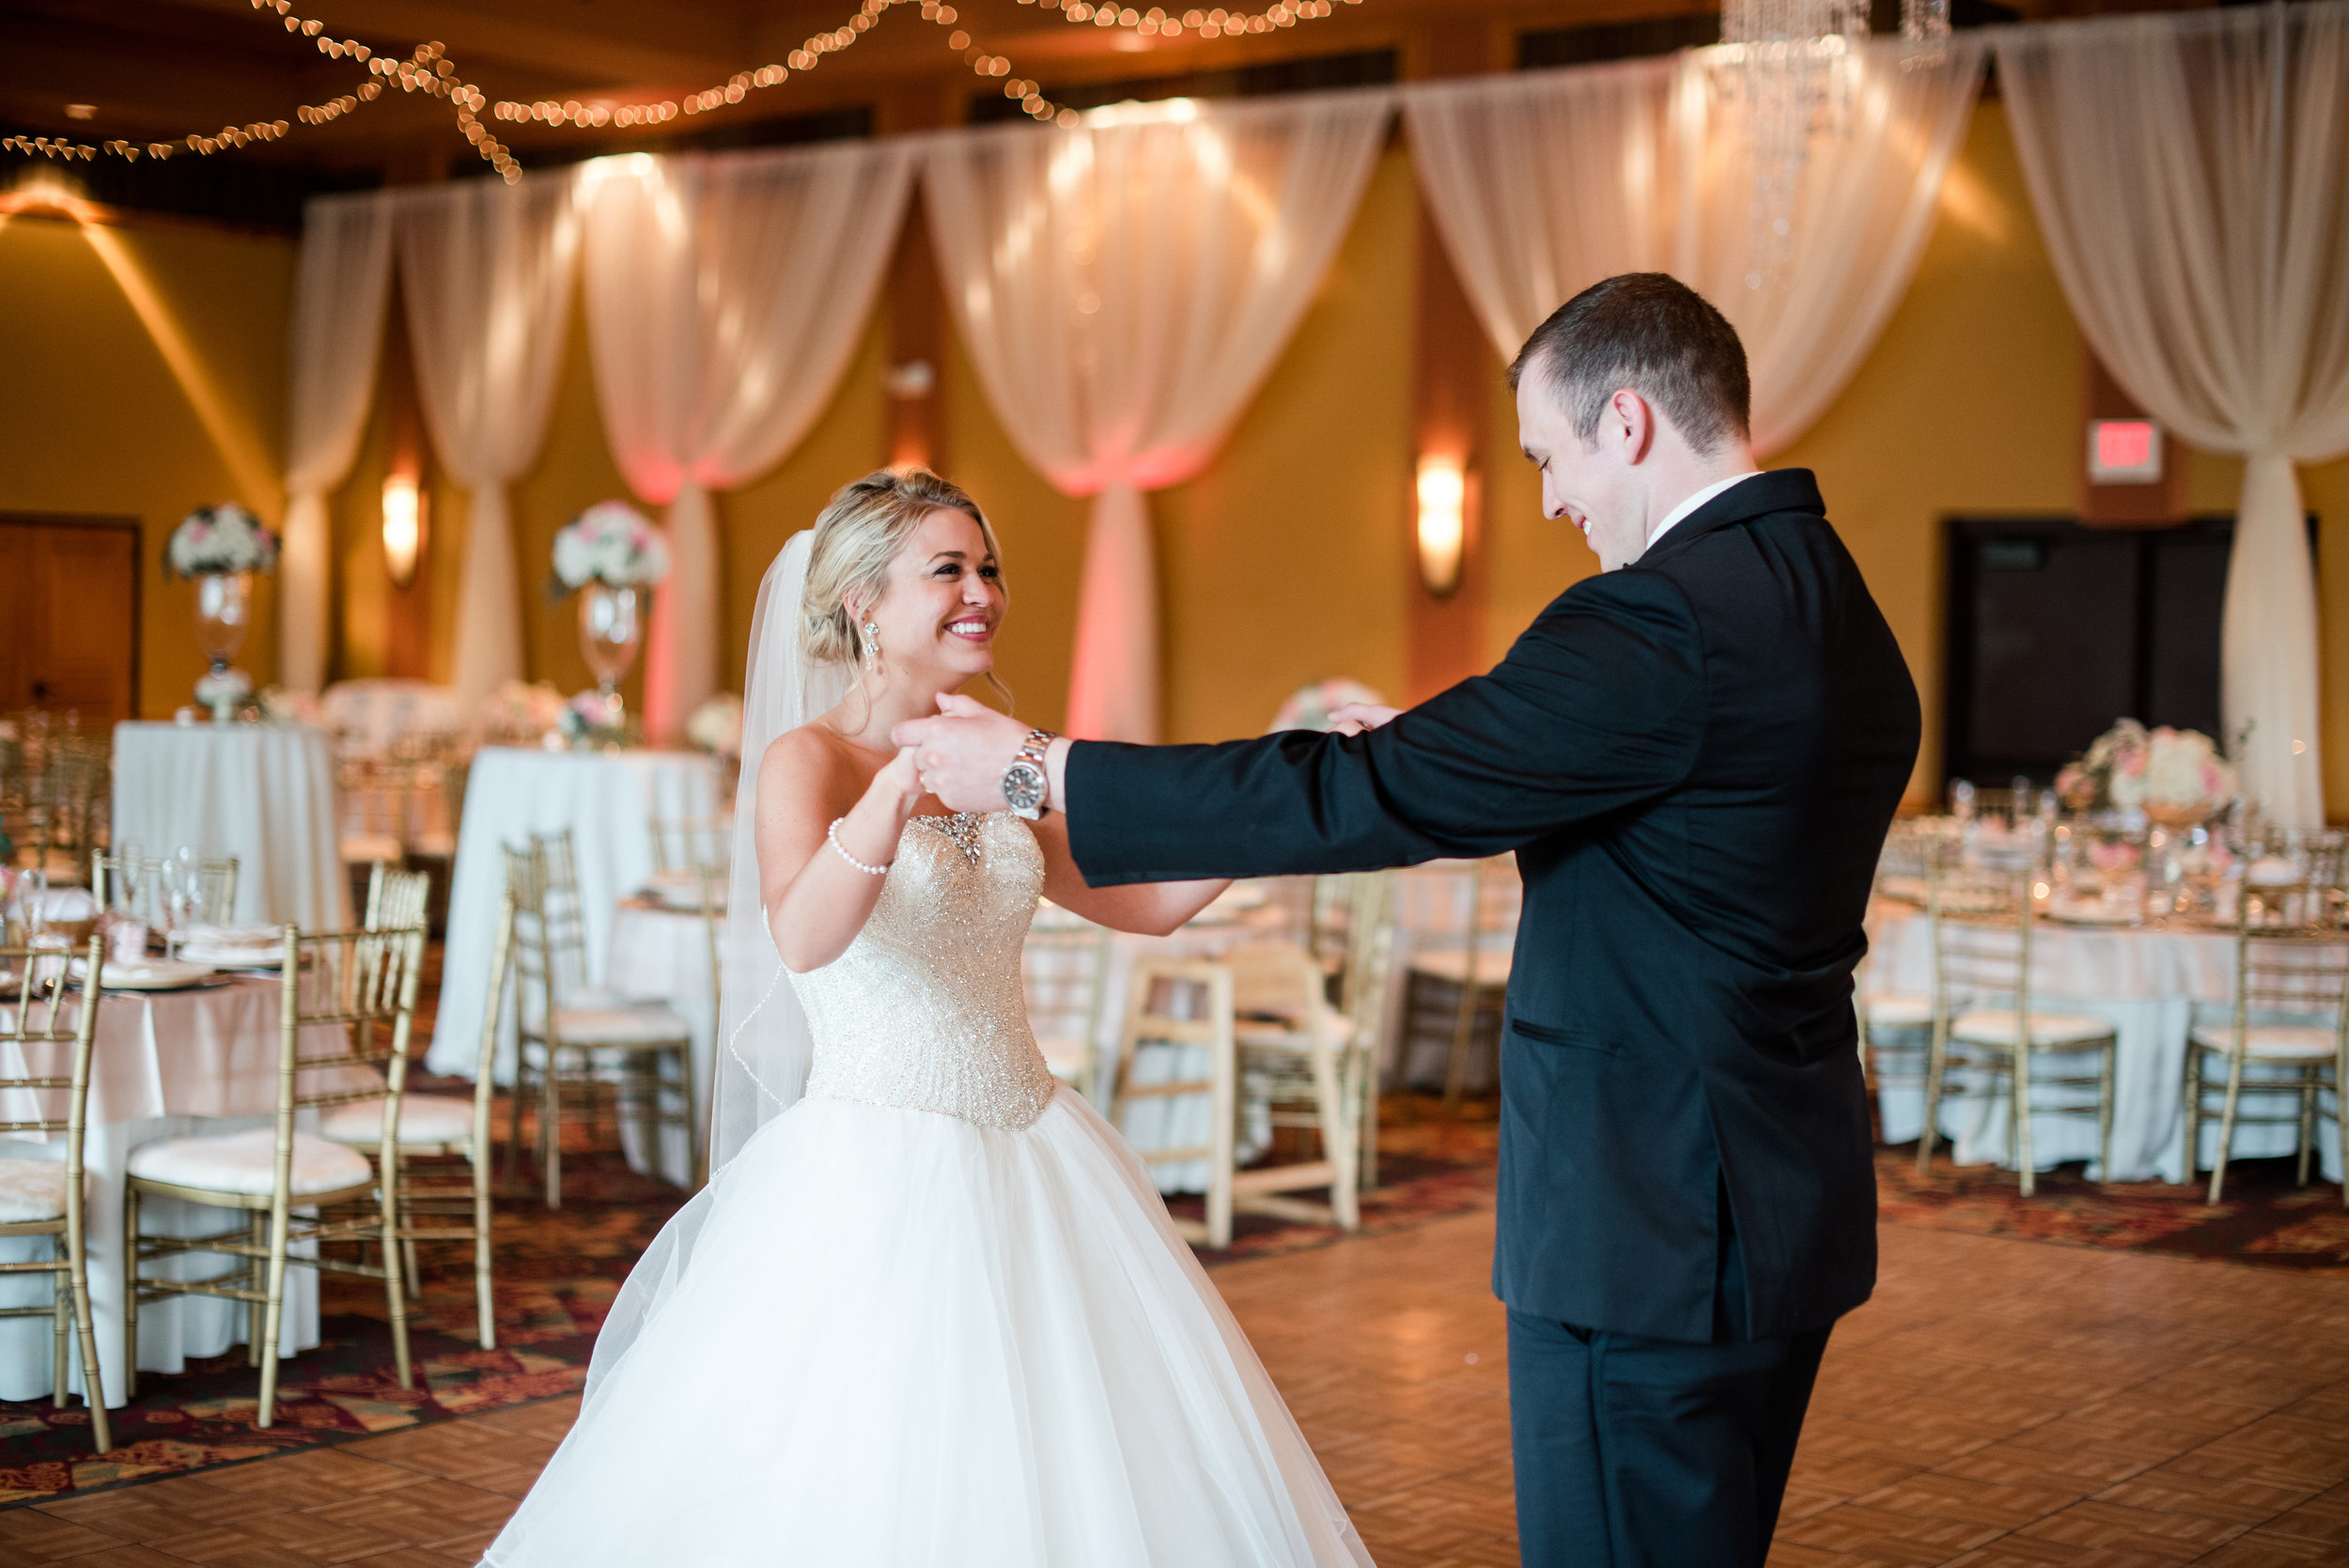 Allie &Tyler Sherron - That one time the entire ballroom was cleared so that these two love birds could slow dance before their guests came in..and then quickly sneak out to do photos...Time definetly sat still.Photo: Tara Draper Photography